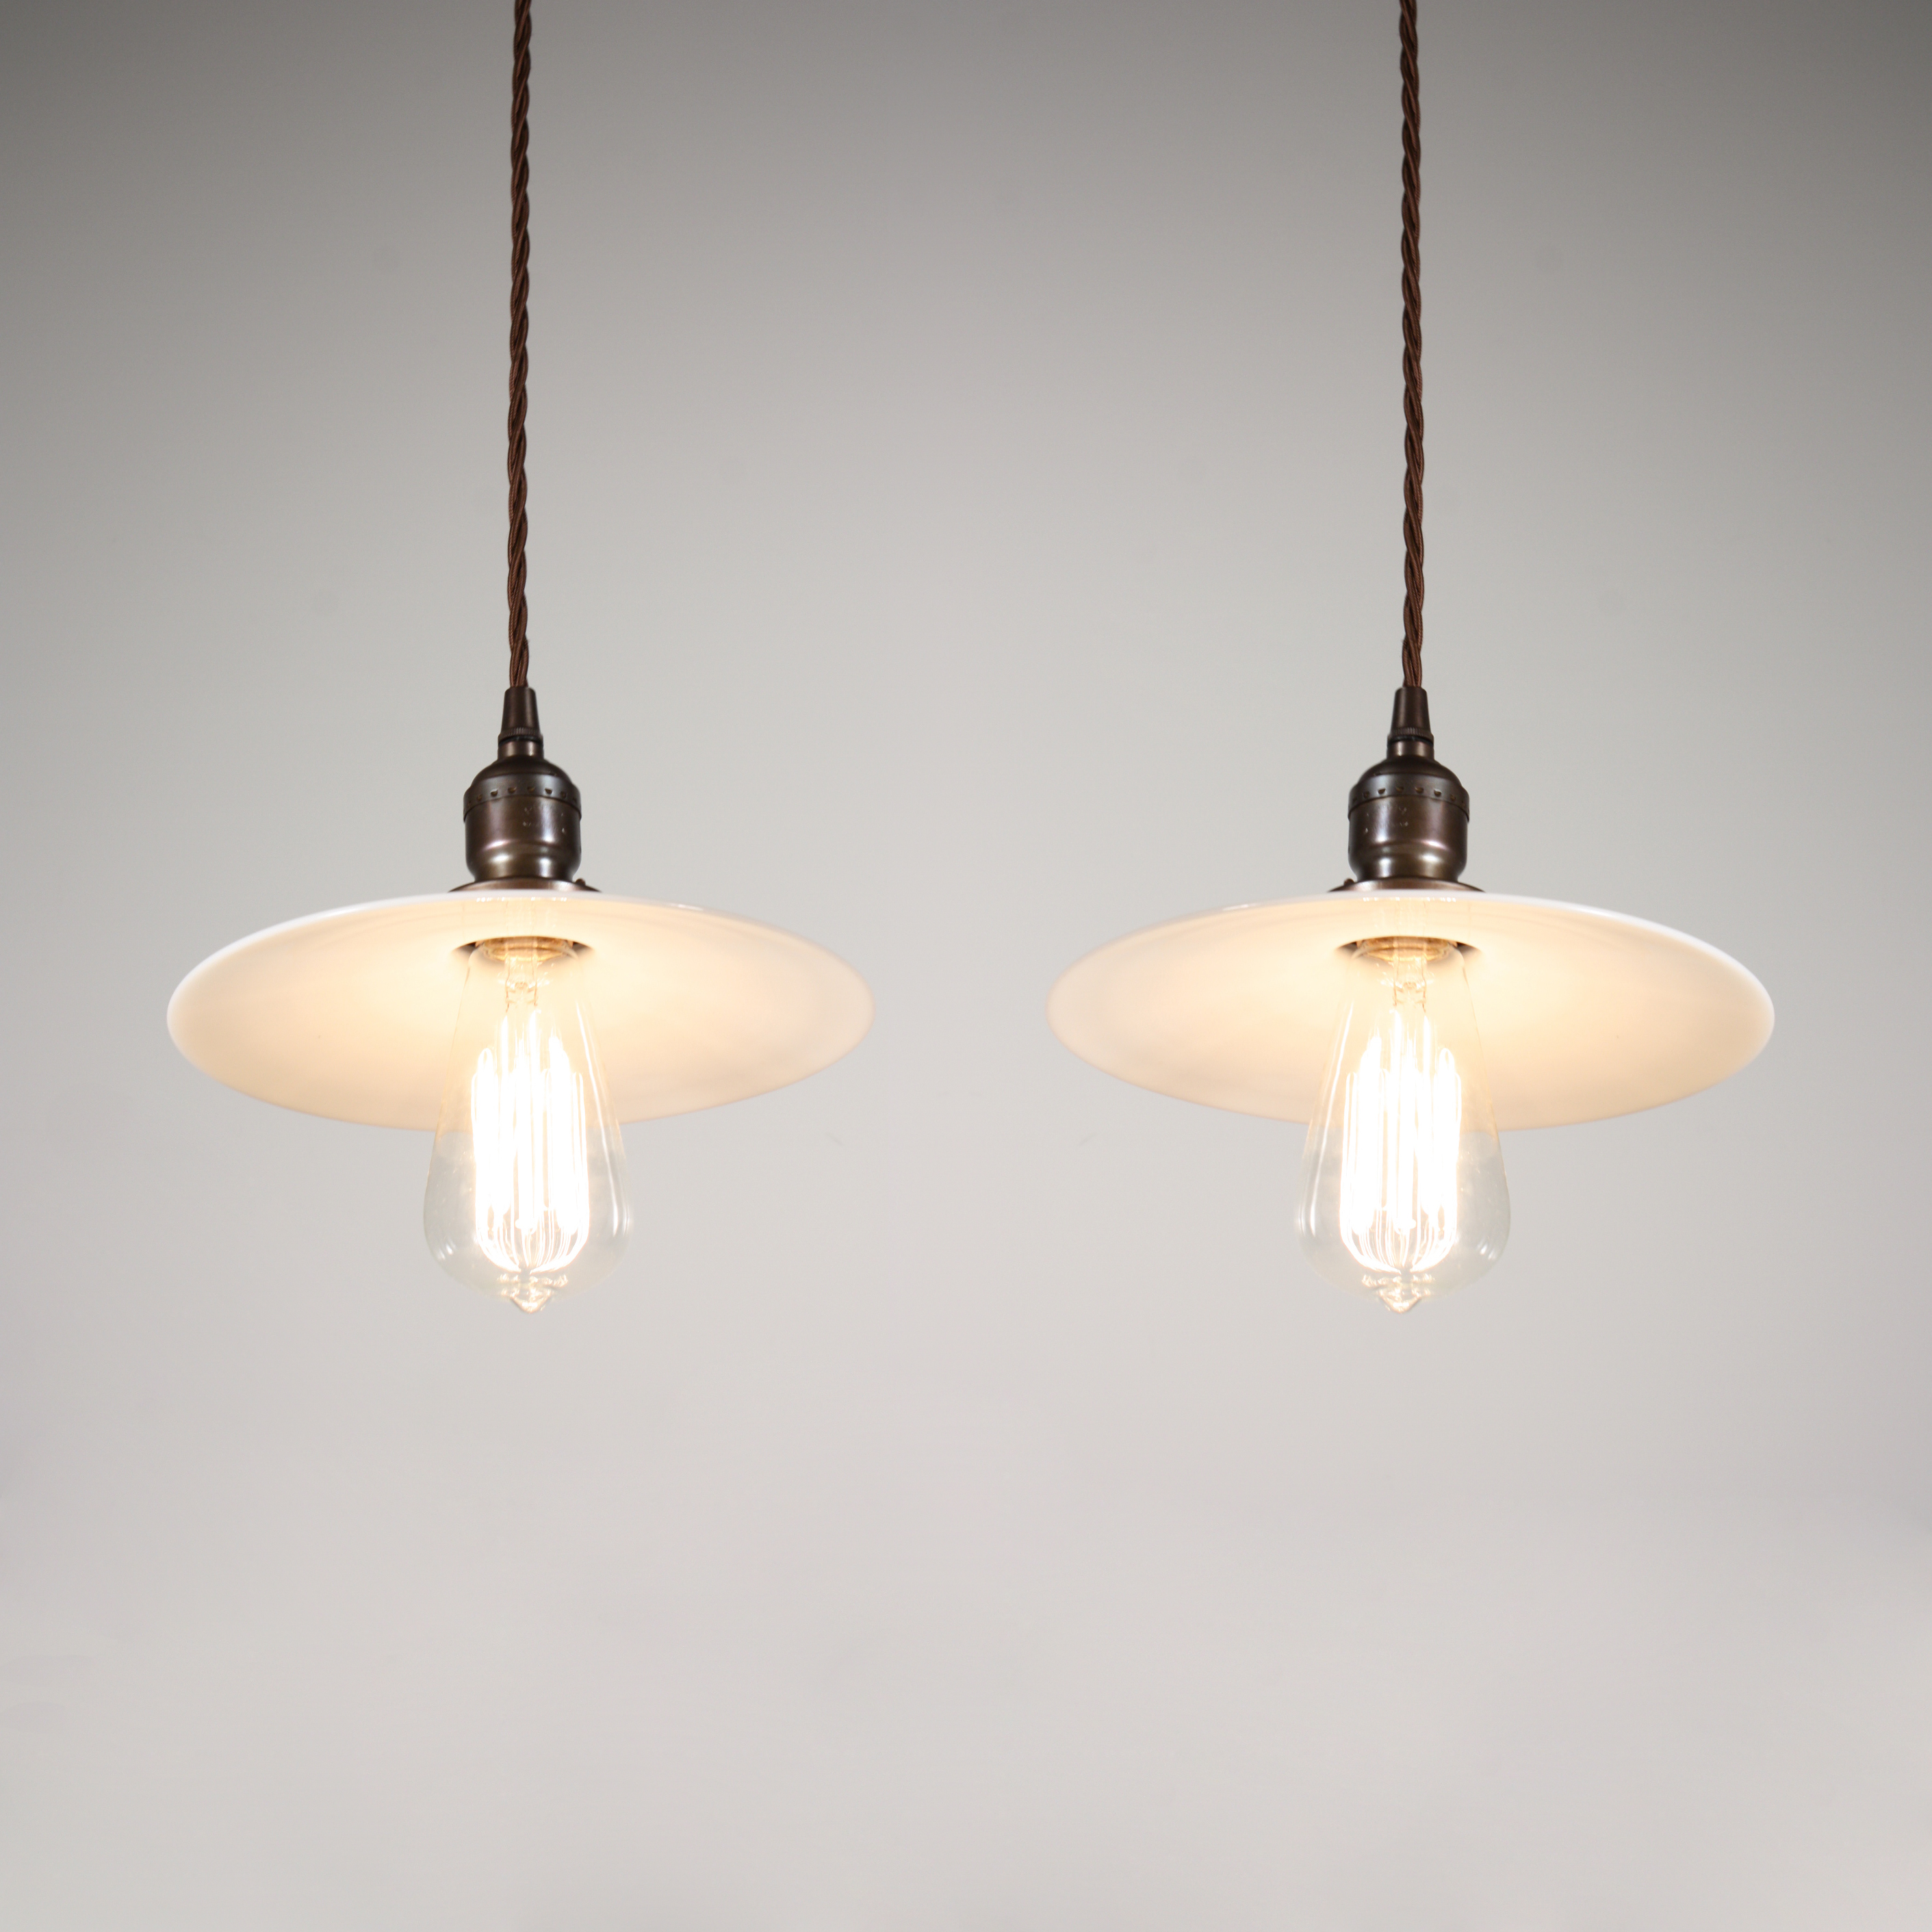 Porch Light Appraisal: Two Matching Antique Industrial Pendant Lights With Milk